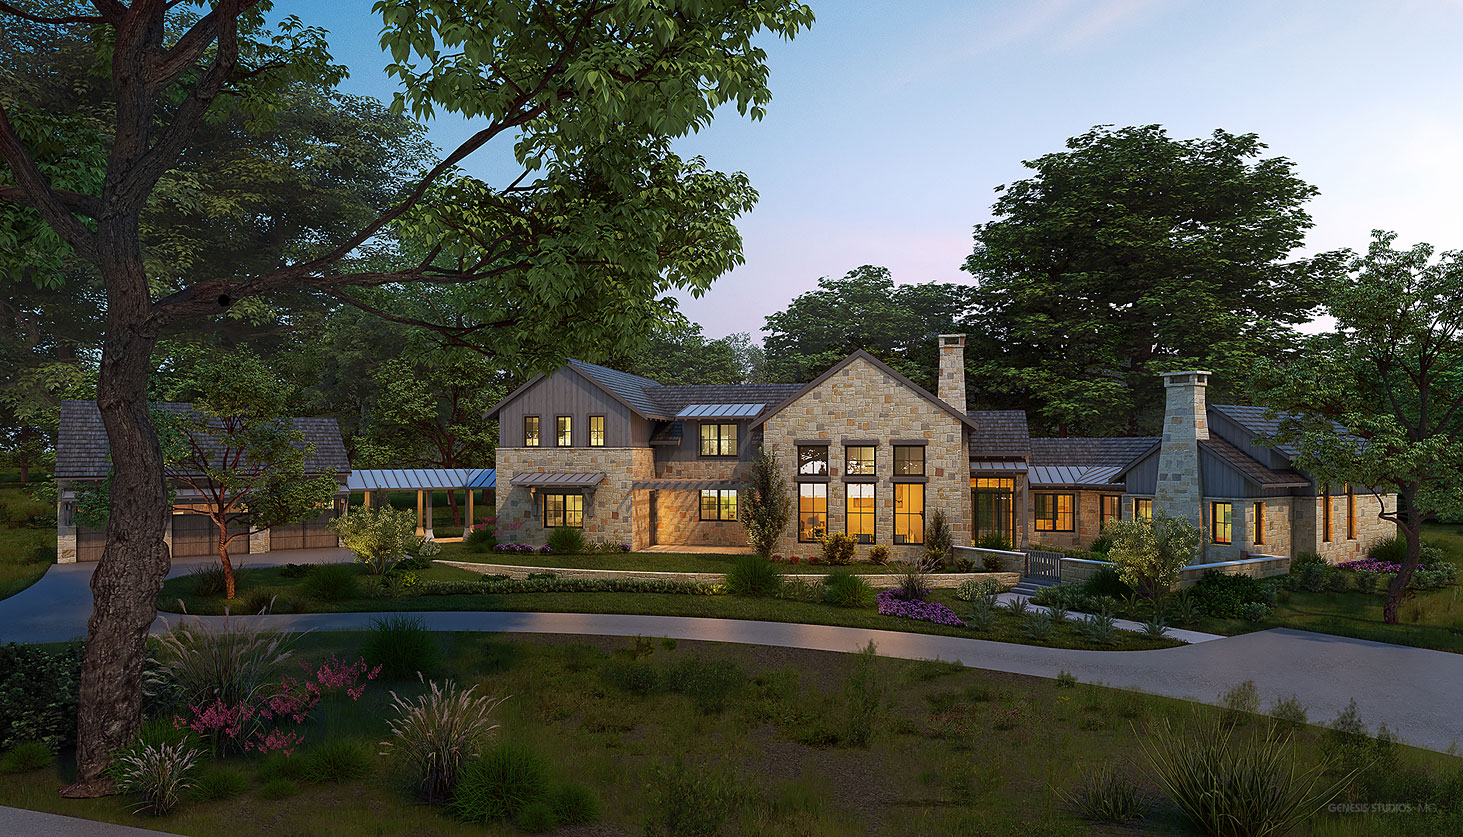 717124 Digital Photorealistic Architectural Renderings of Boot Ranch Villas Mabery Front Yard at Dusk for Wheelock Communities